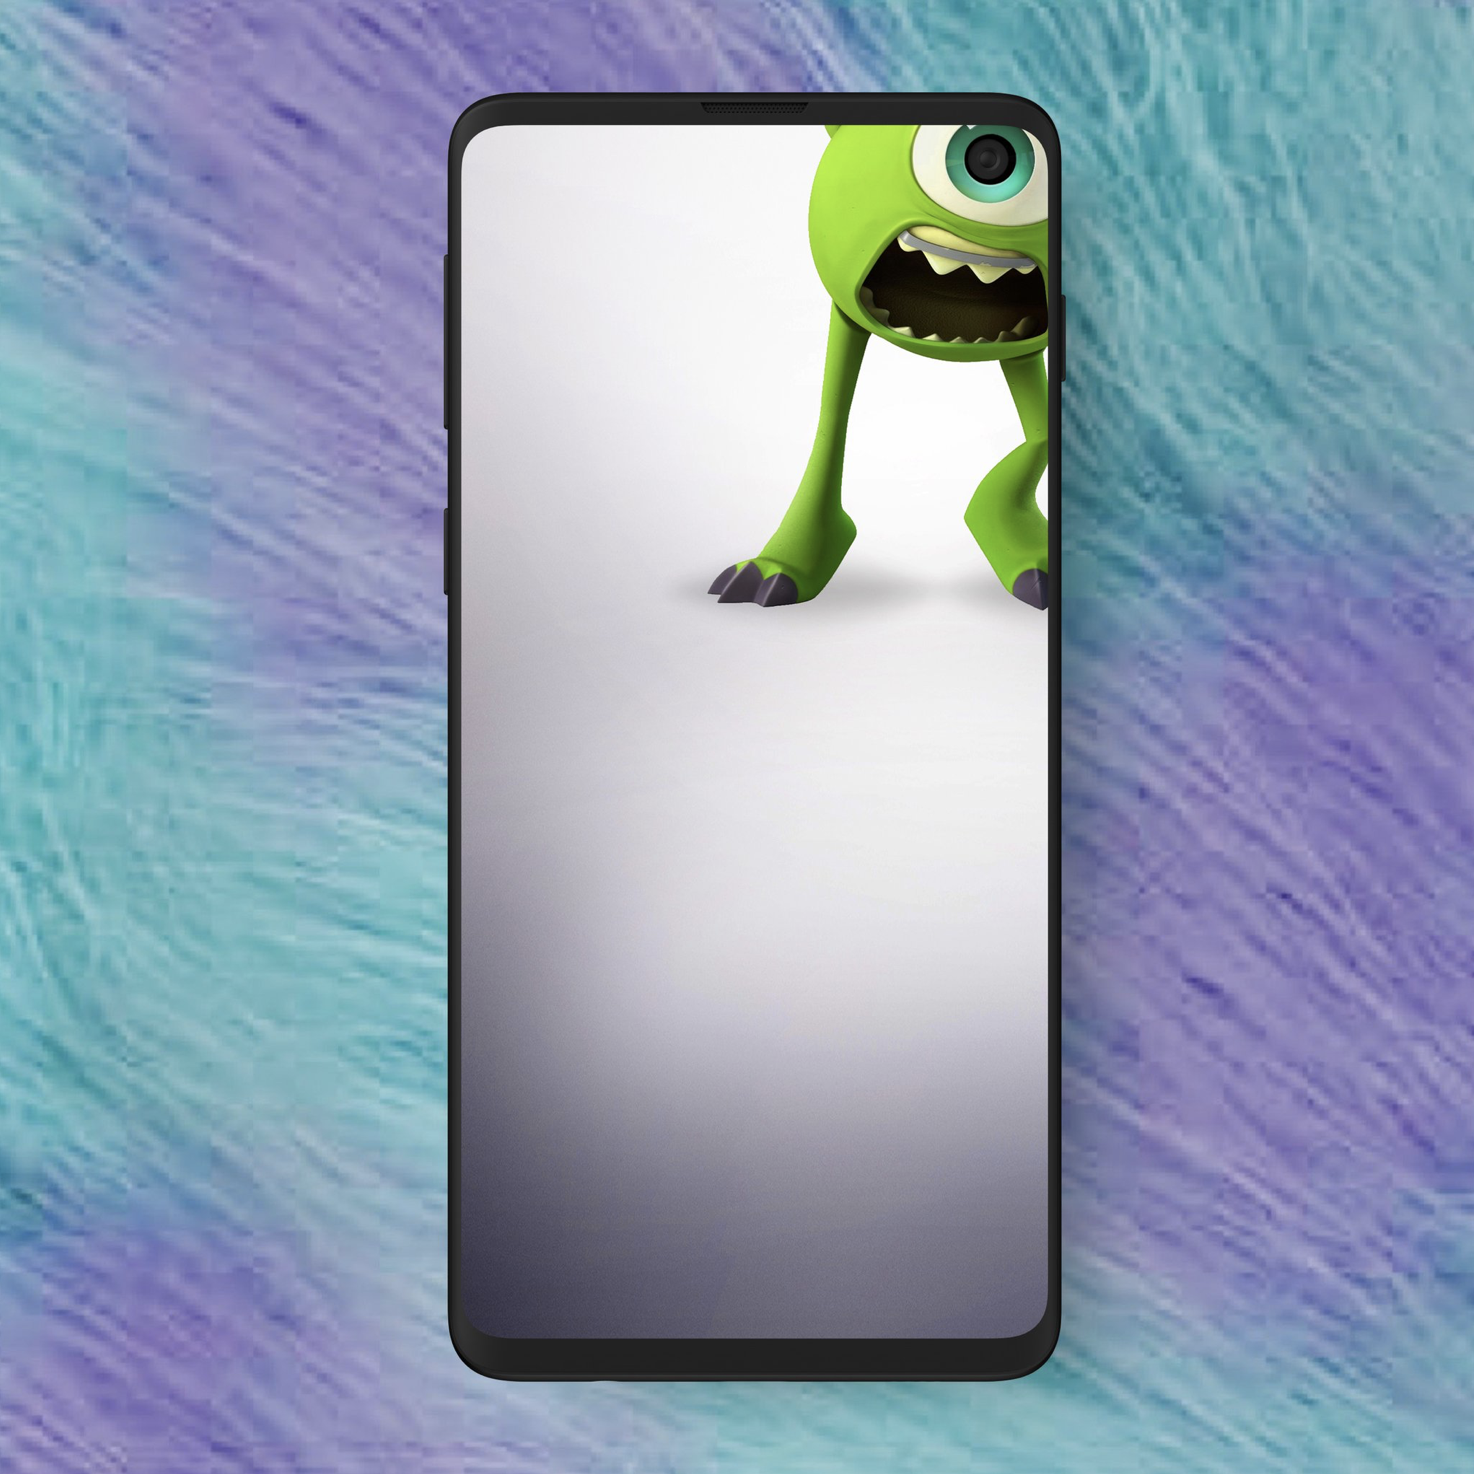 Free Download Download Camera Cut Out Wallpapers For Galaxy S10 S10 S10e 1474x1474 For Your Desktop Mobile Tablet Explore 35 Samsung Galaxy S10e Wallpapers Samsung Galaxy S10e Wallpapers Samsung